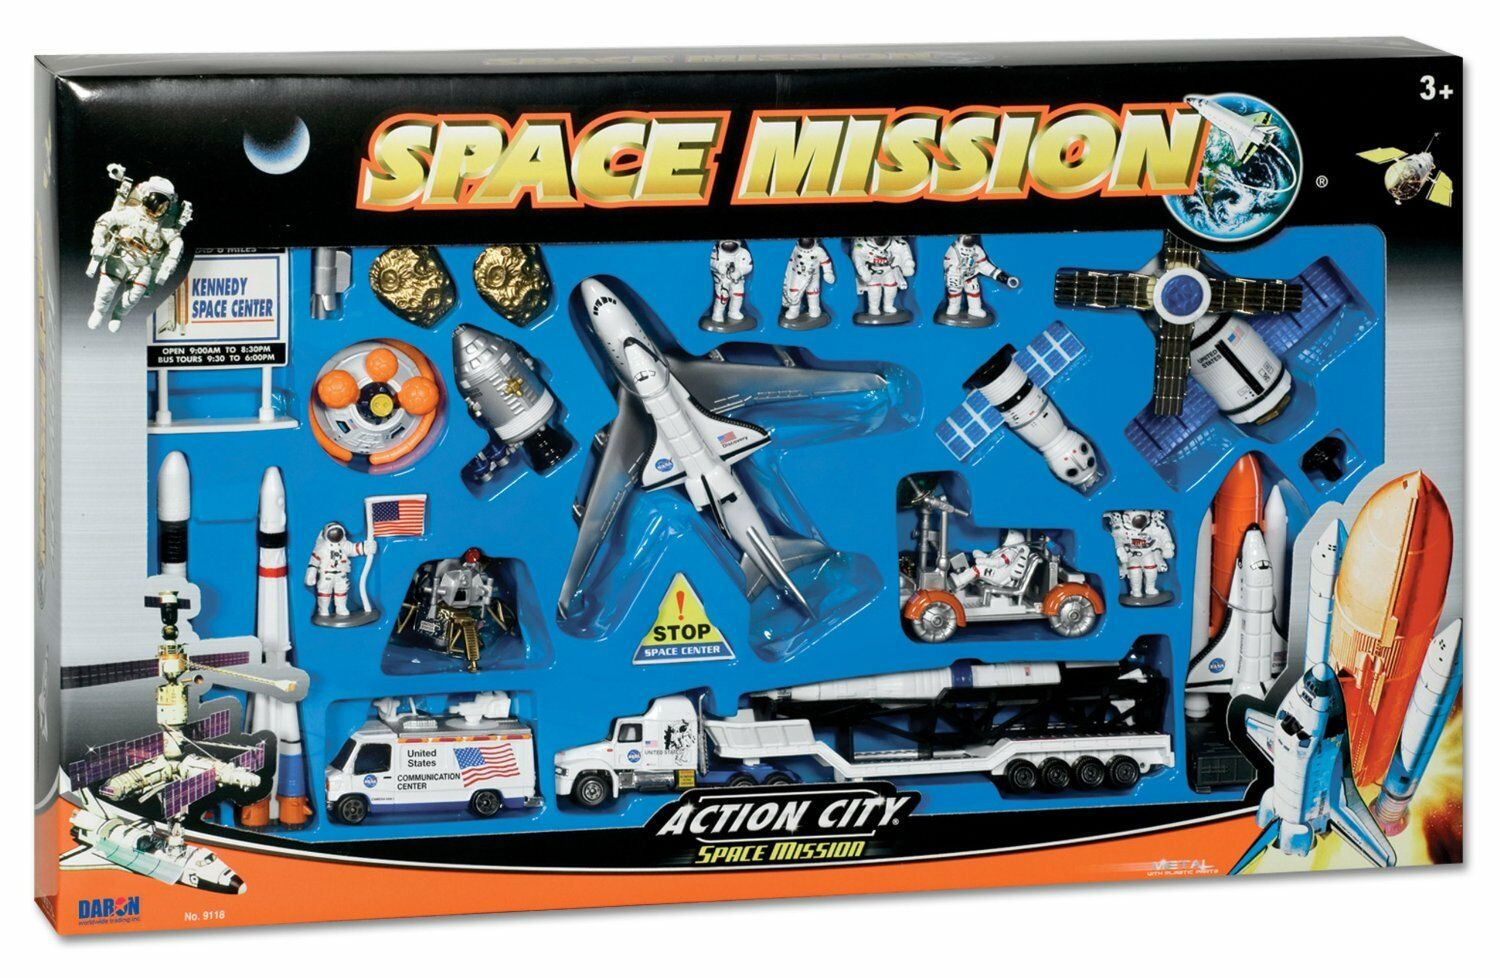 Space Shuttle with Kennedy Space Center Sign 28 Piece , New, Free Shipping